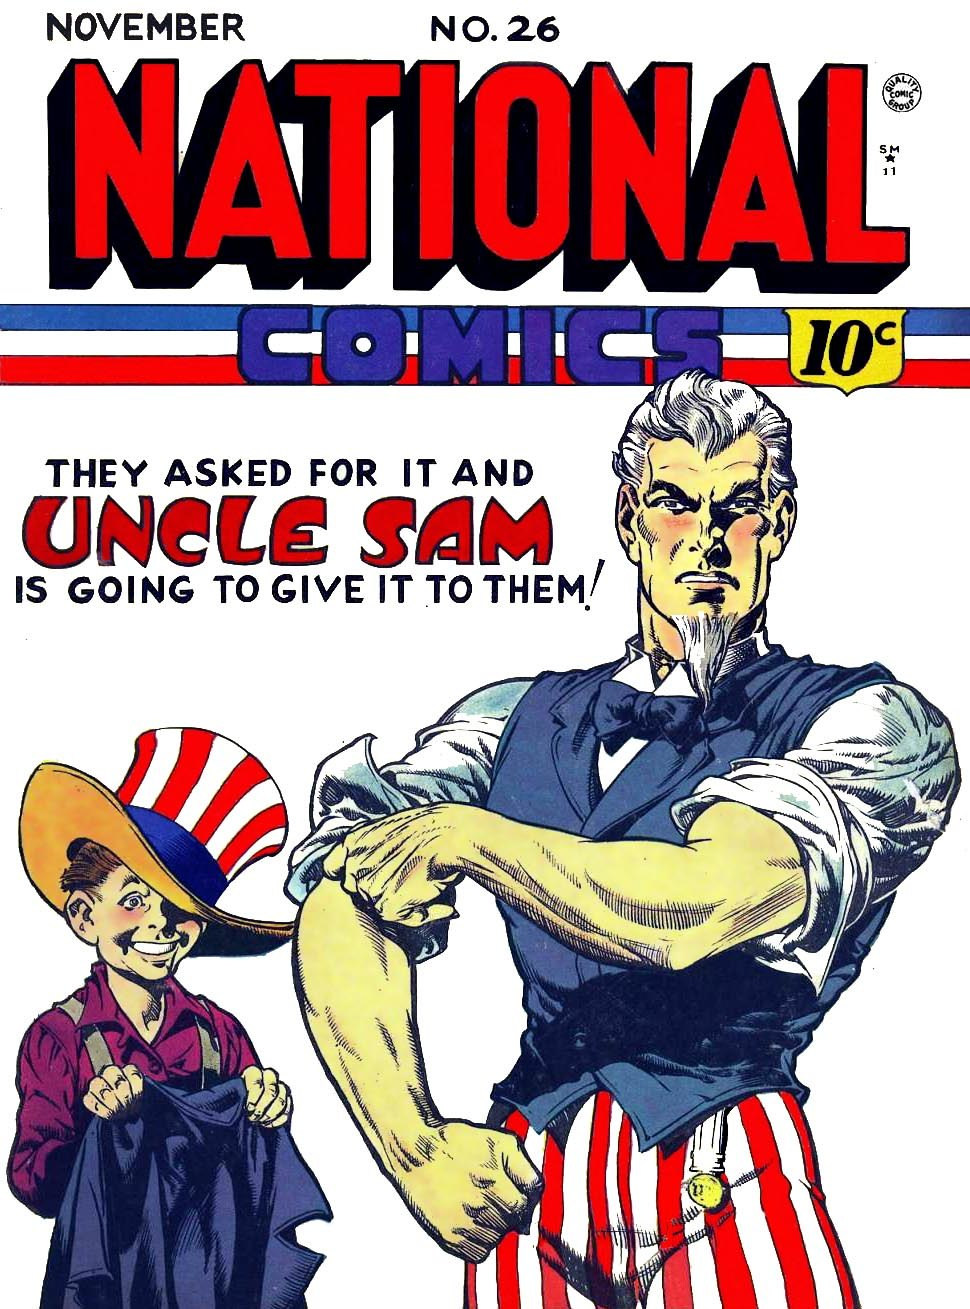 NationalComics26